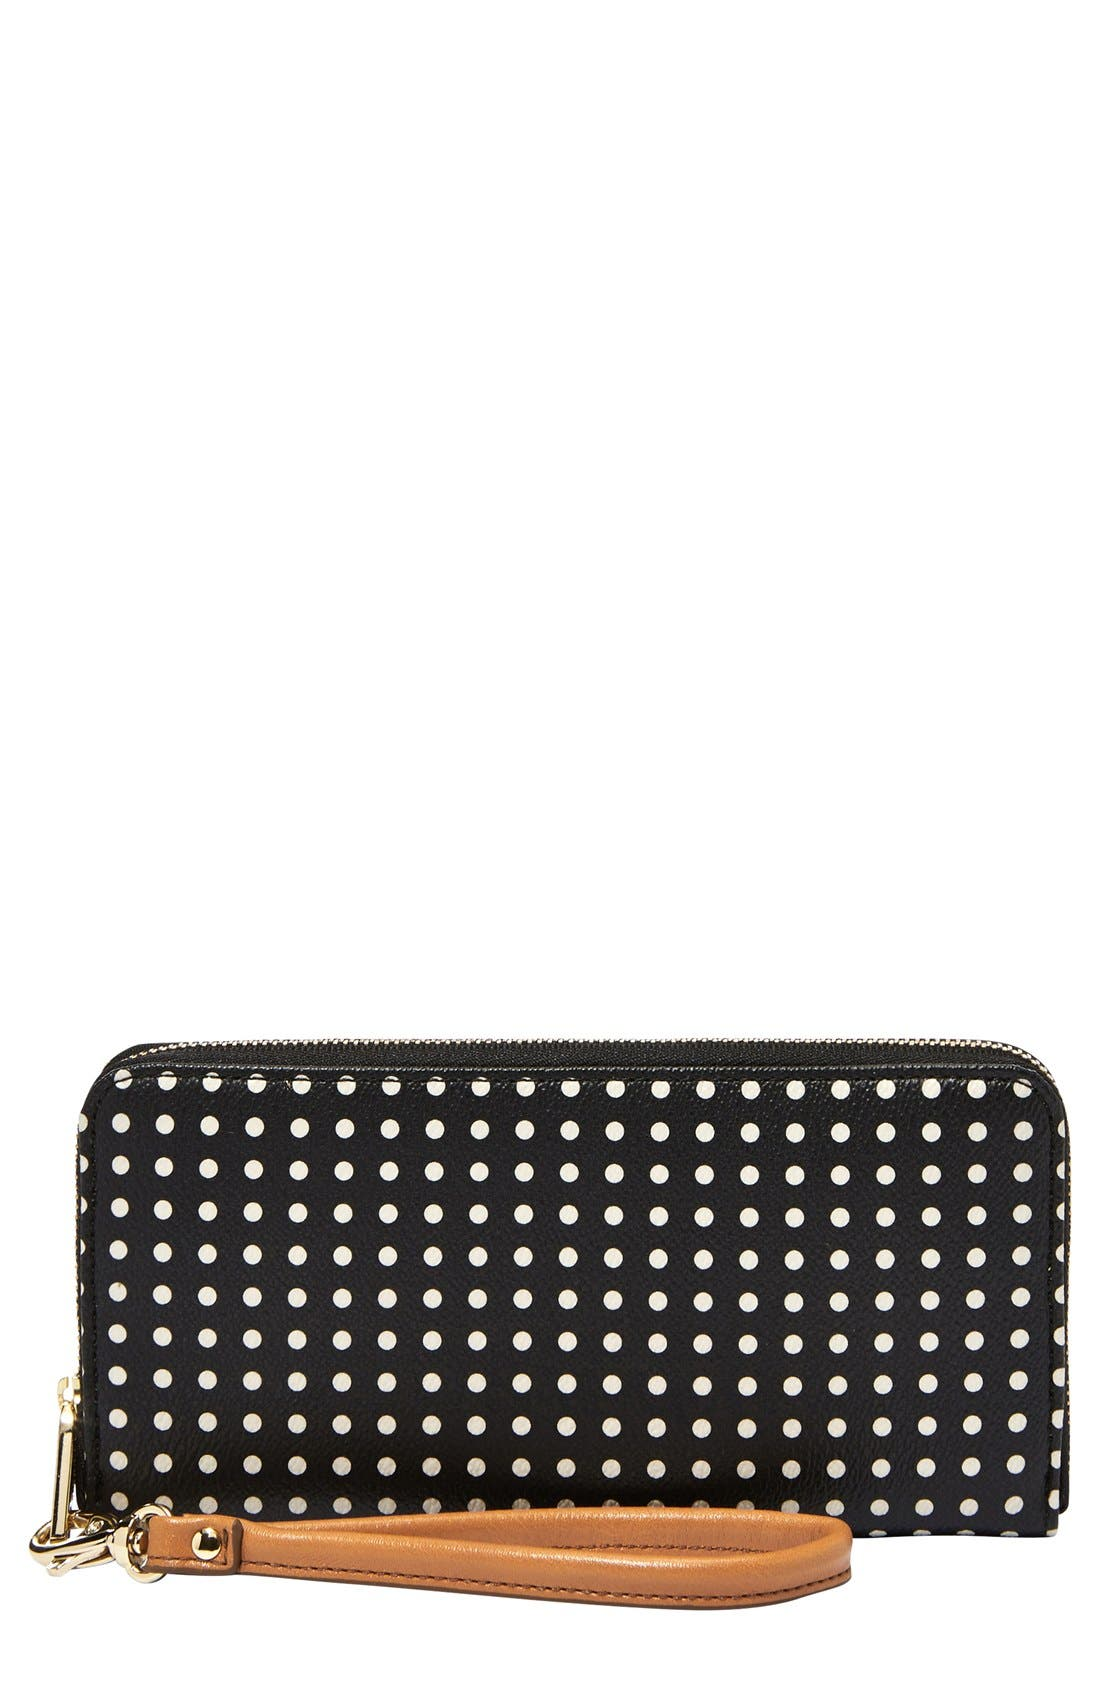 Main Image - Fossil 'Sydney' Print Leather Zip Clutch Wallet